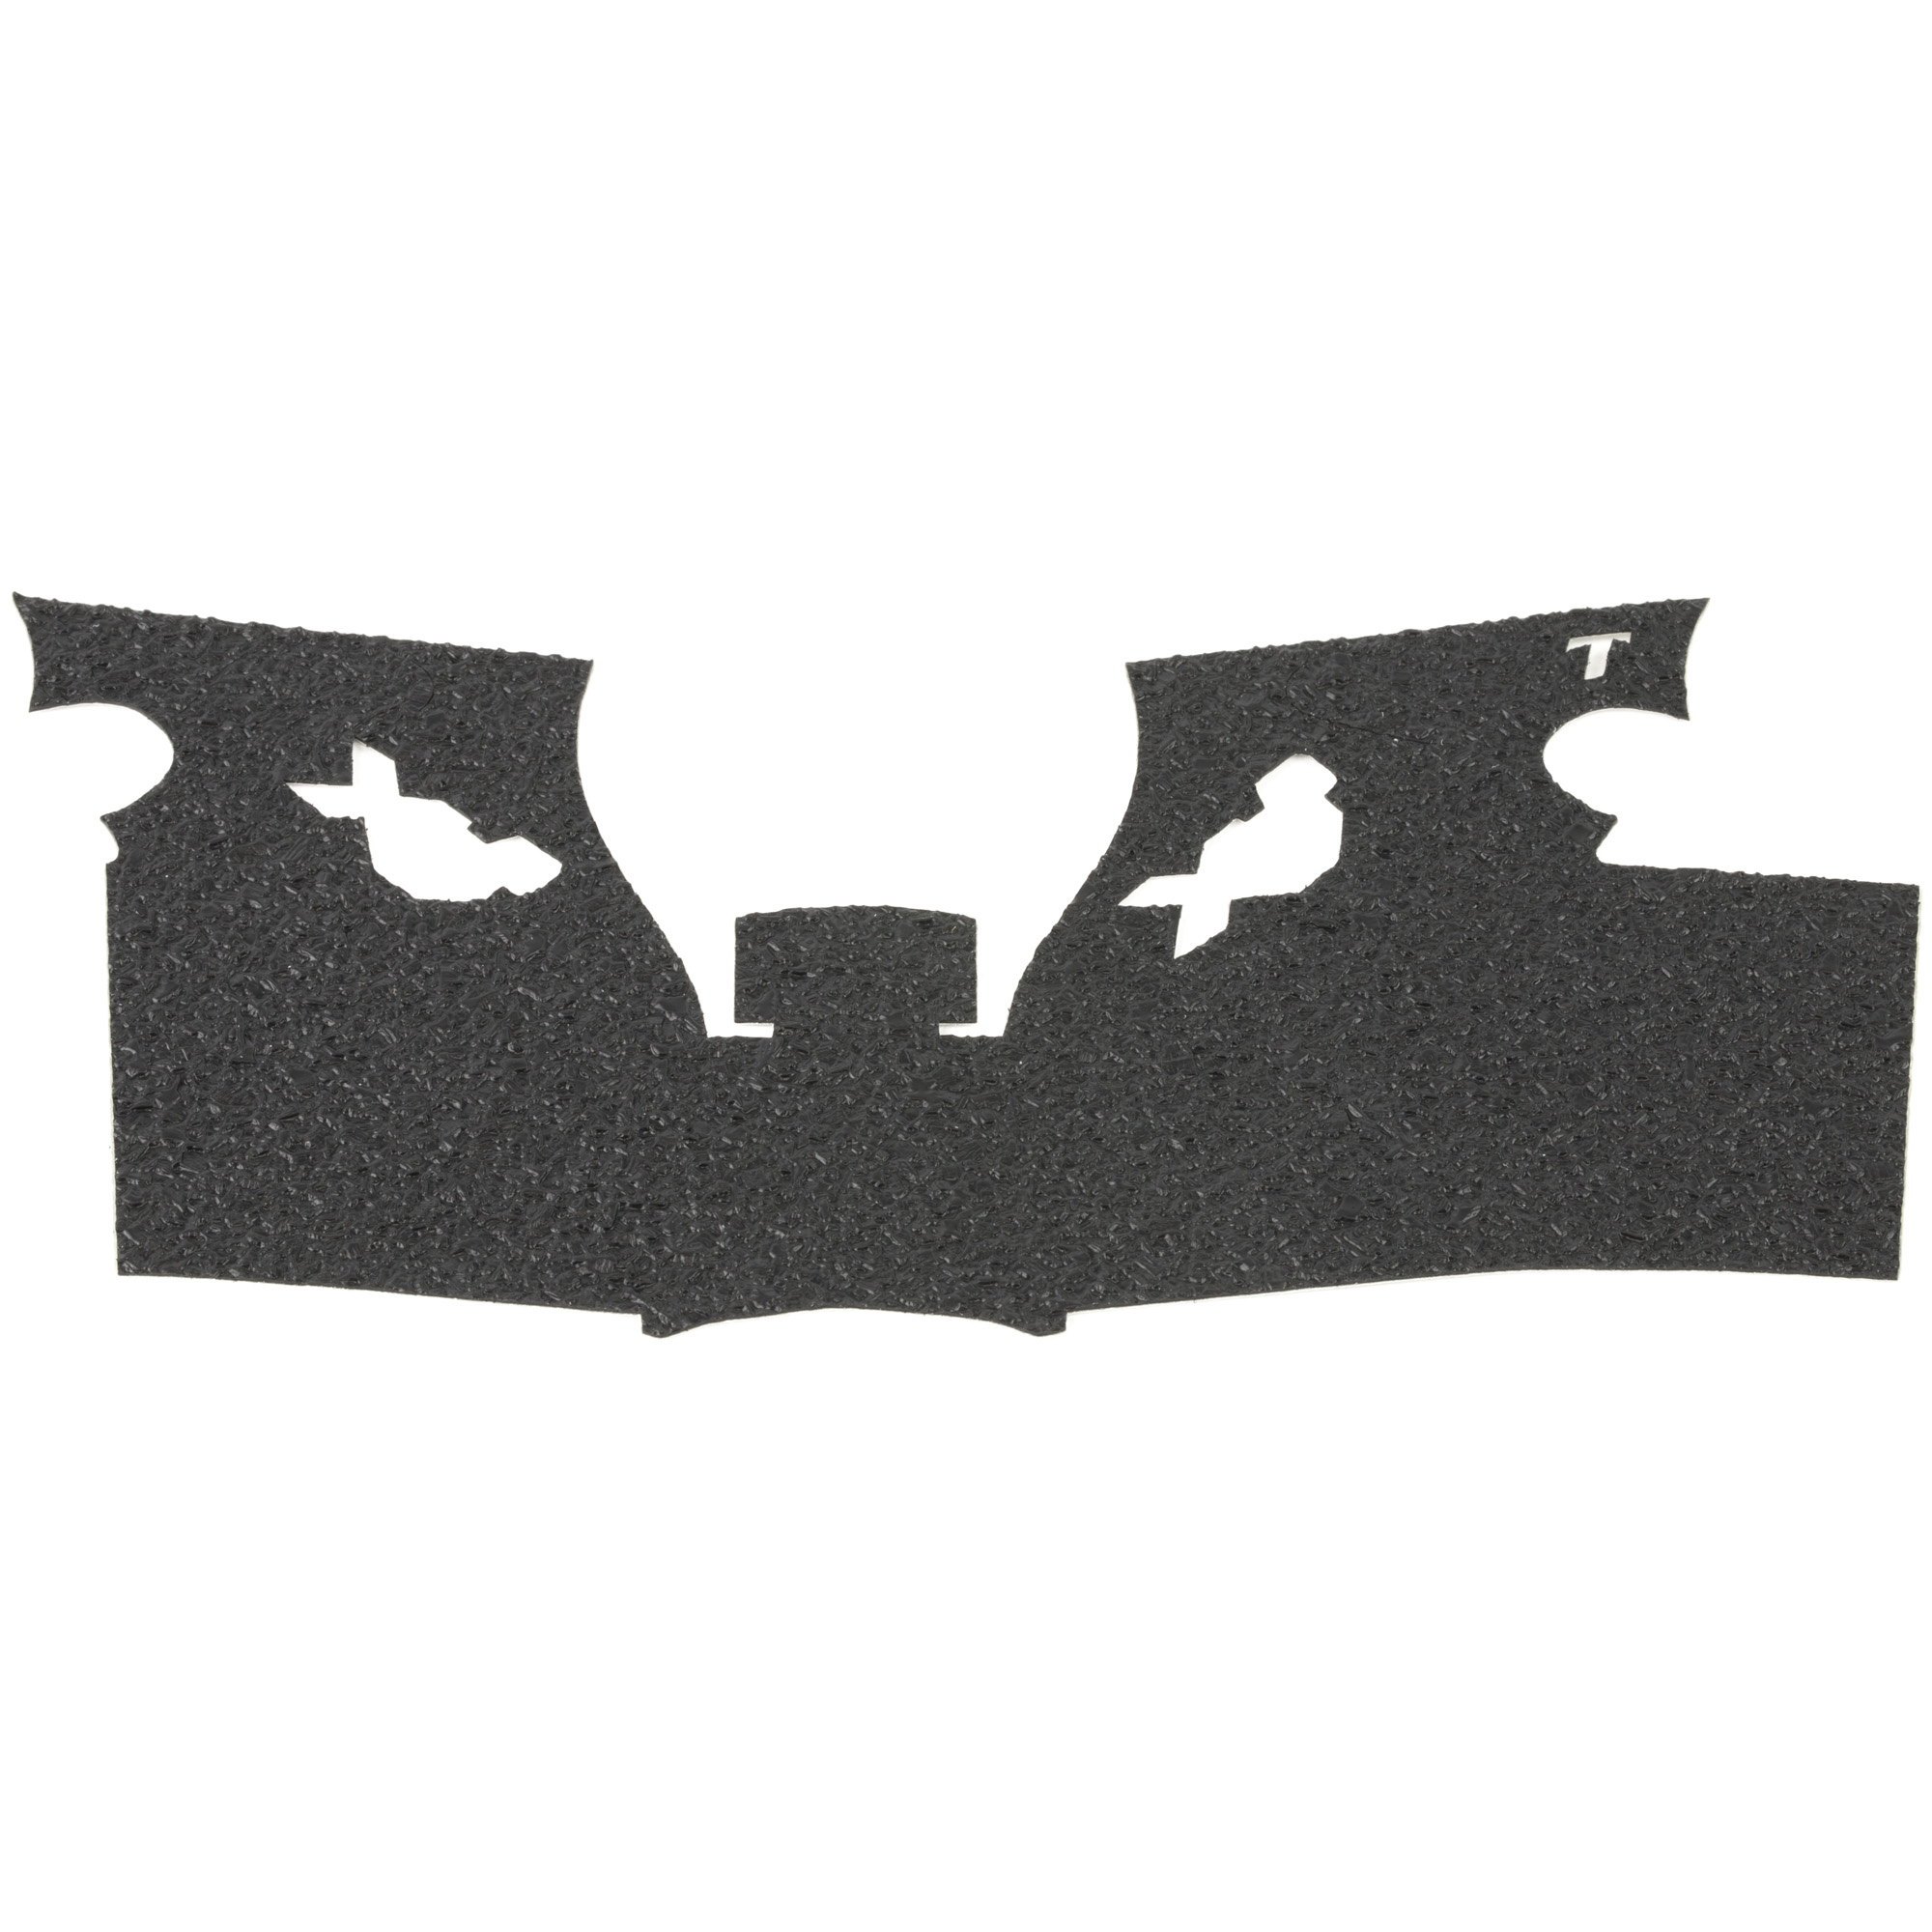 """TALON Grips for Springfield XD-S 9mm"""" .40 and .45 ACP single stack models with the 3.3"""" and 4.0"""" barrel with a Small Backstrap. This rear wrap grip is in the rubber texture and offers full side panel coverage including the thumb rest area"""" full coverage under the trigger guard"""" and full coverage on the backstrap. There are cutouts on the grip around the XD-S logo. Confirm backstrap size installed on firearm prior to ordering. XD-S Gear Mag X-Tension extended magazine grips and Pearce Magazine Extender grips are available for this model (sold separately)."""